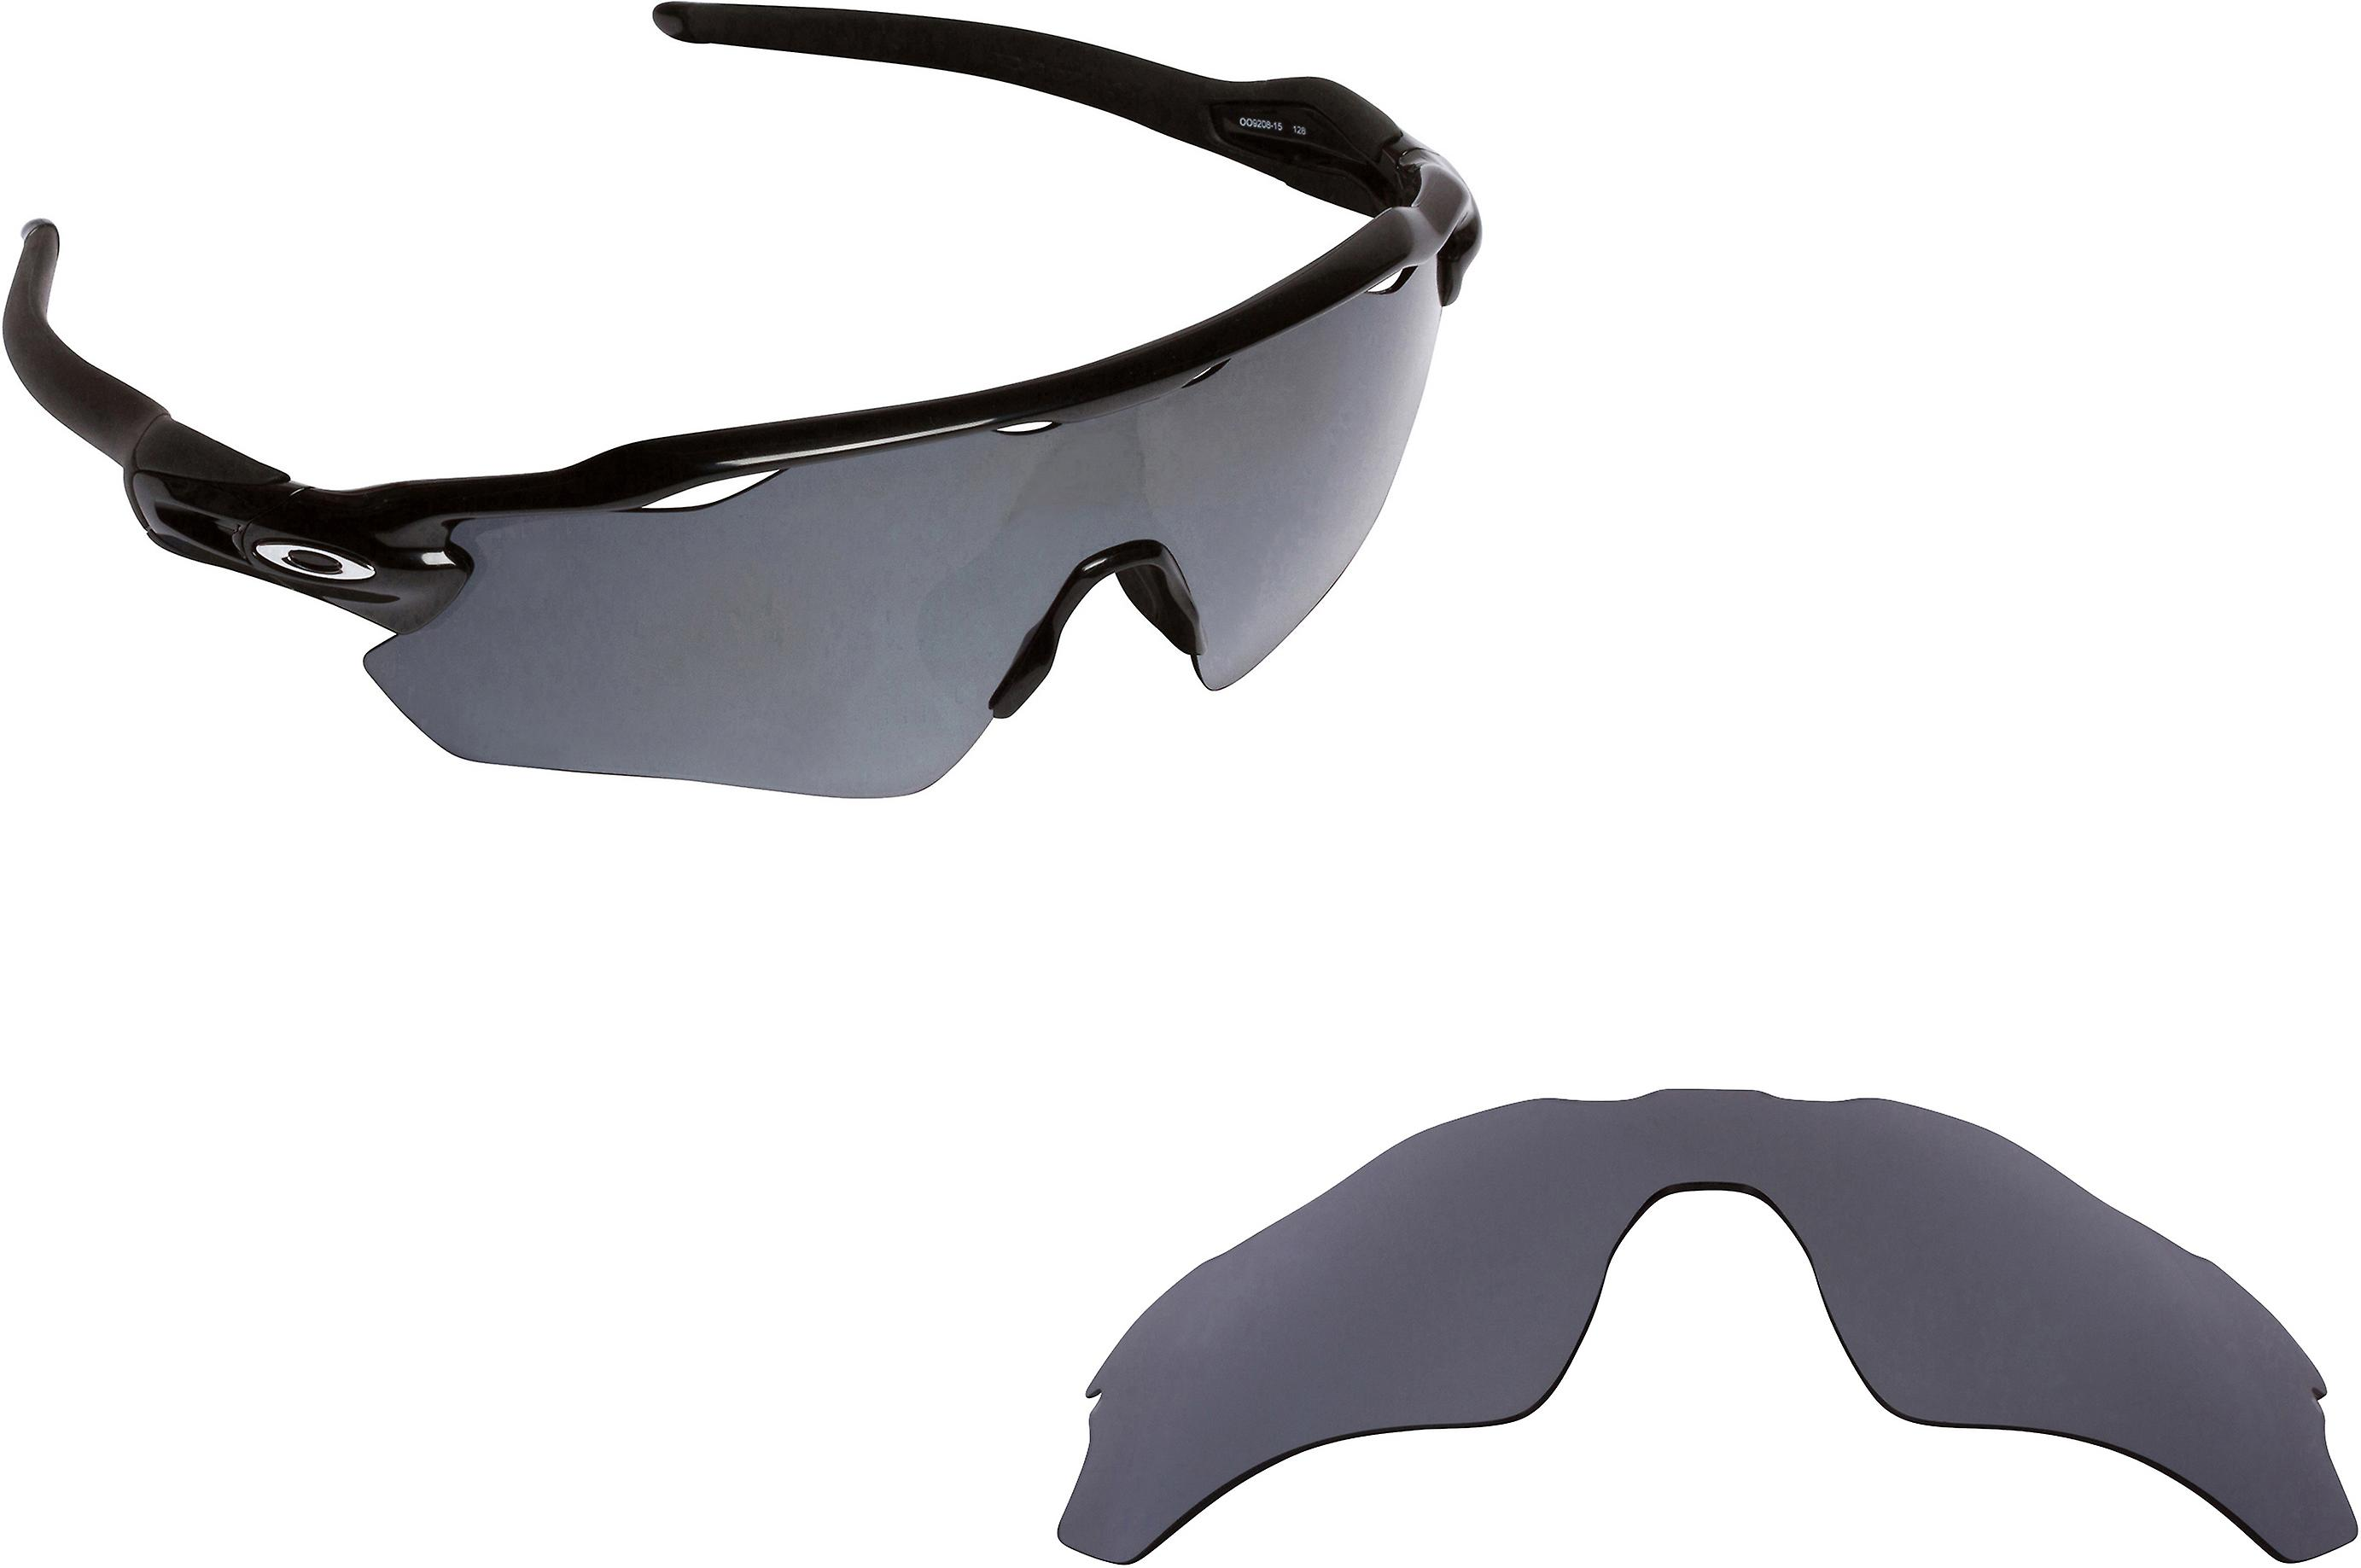 Polarized Replacement Lenses for Oakley Radar EV Path Frame Silver Anti-Scratch Anti-Glare UV400 by SeekOptics